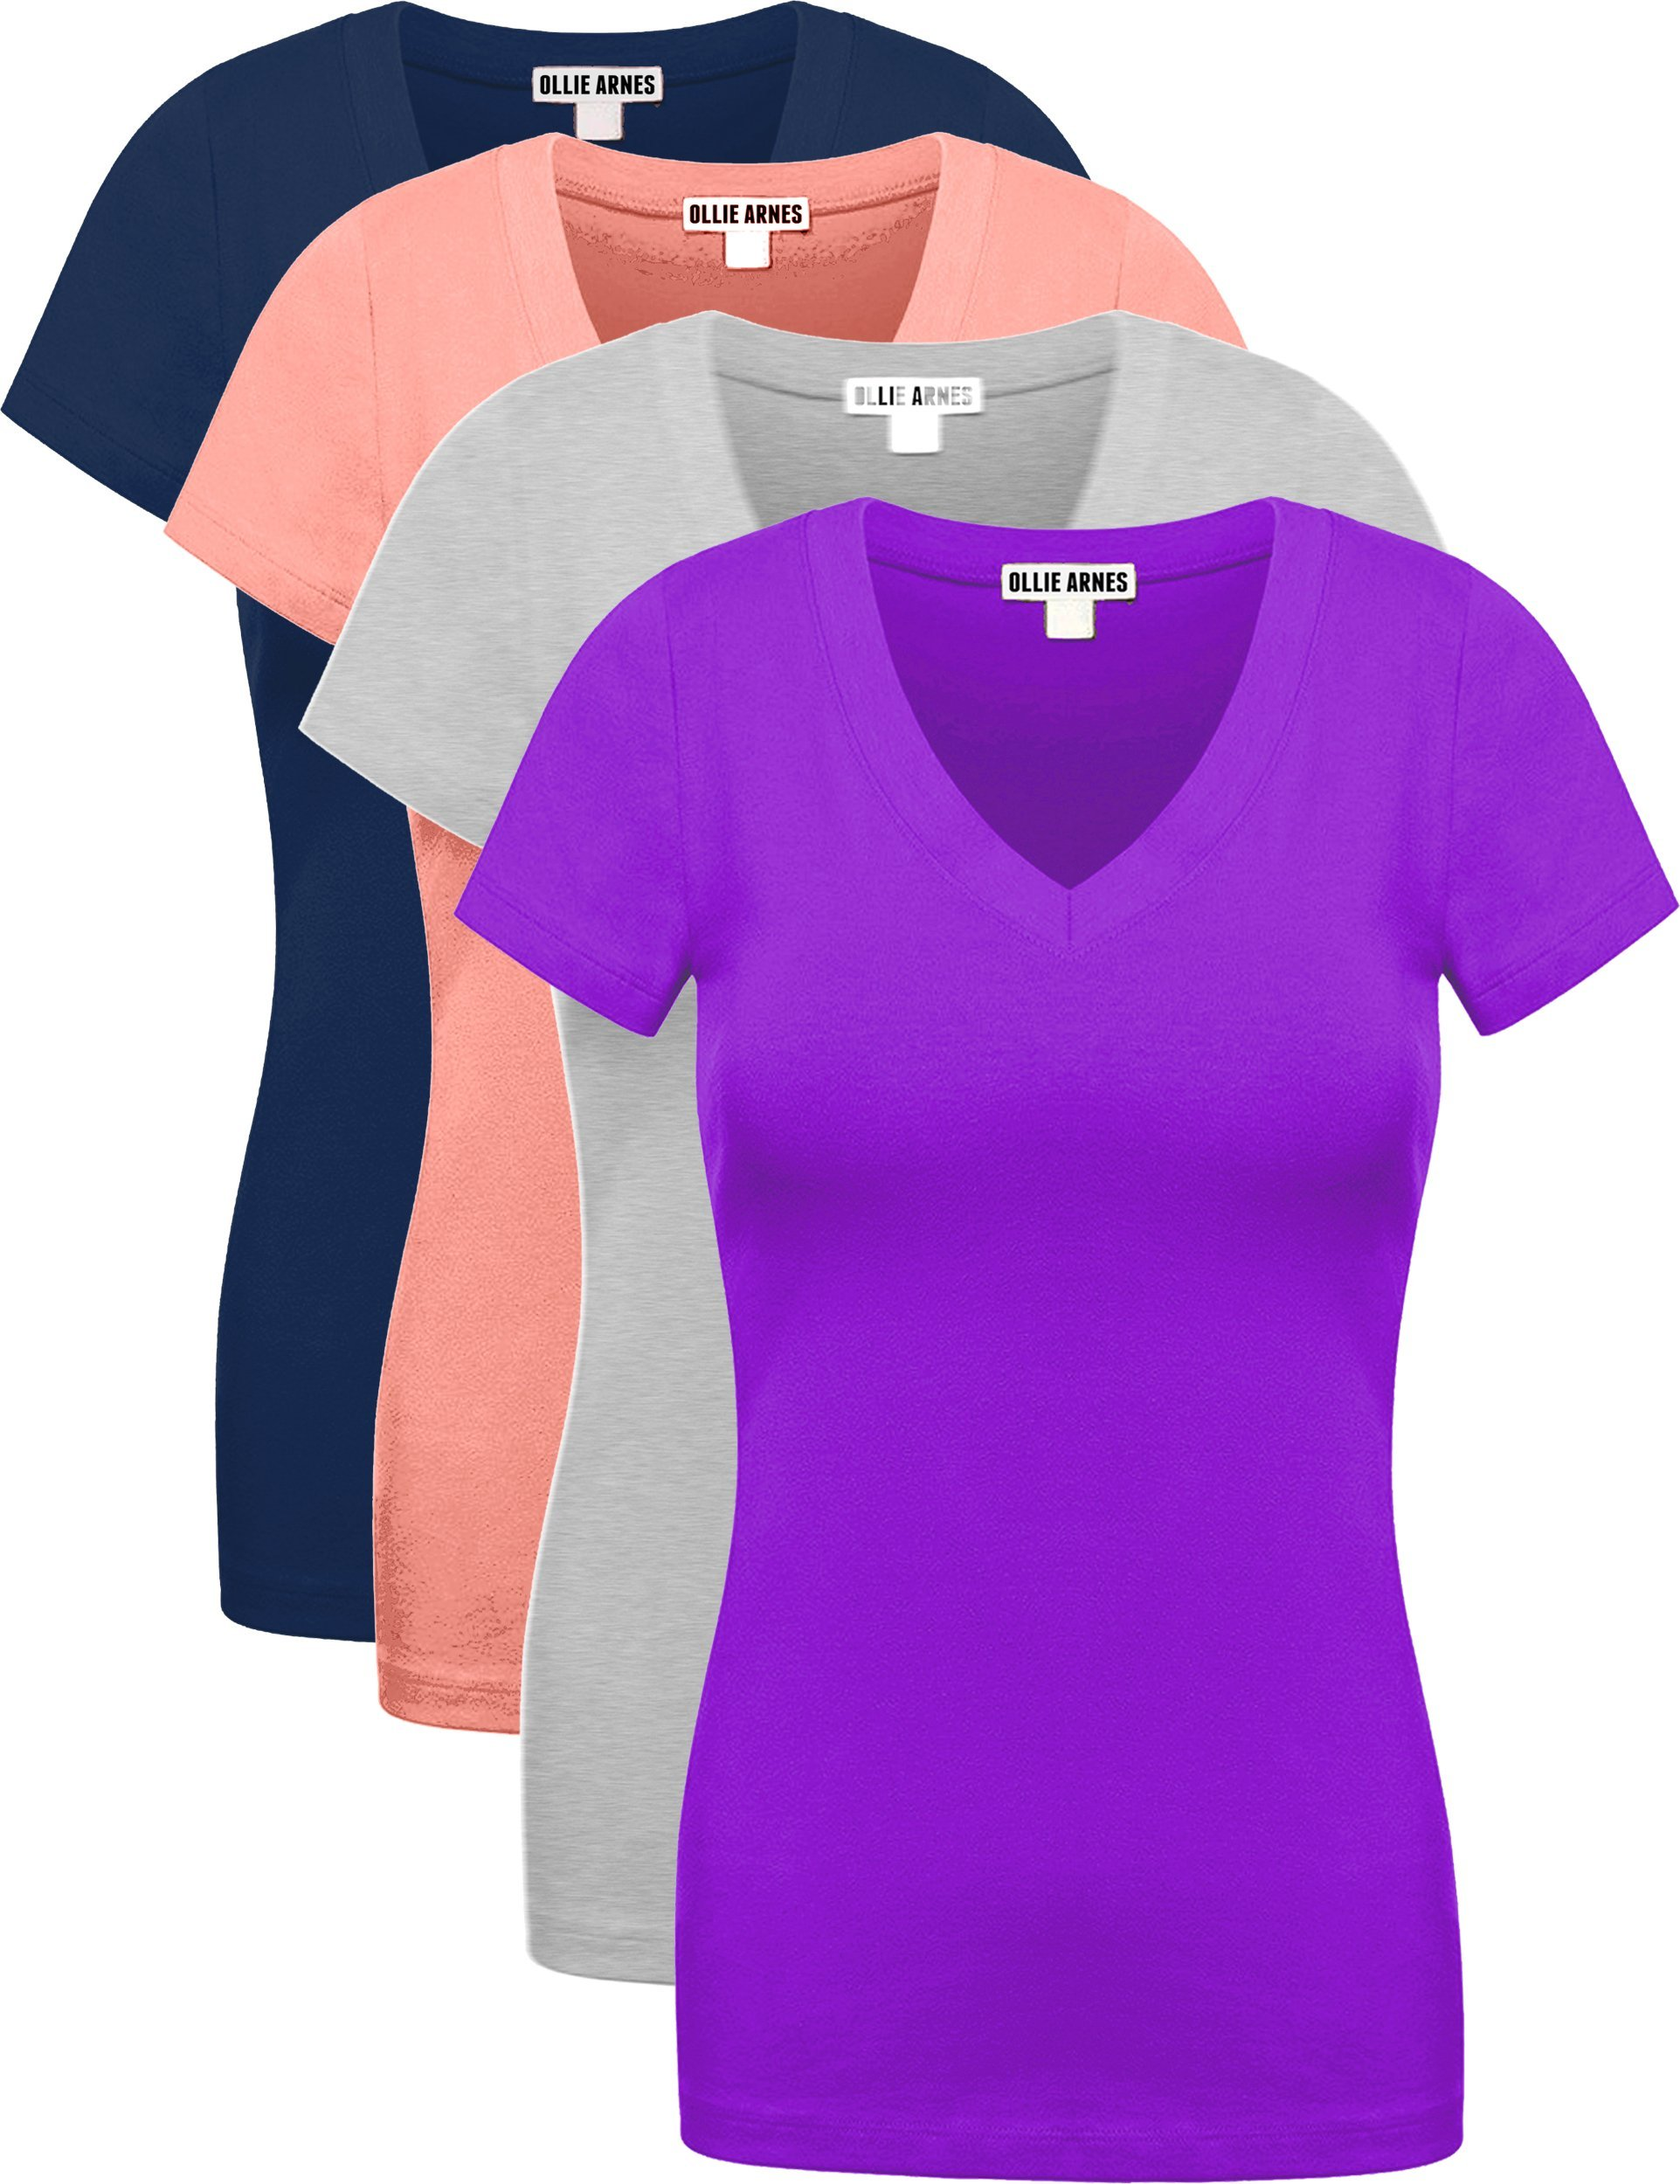 Ollie Arnes Women's 4 Pack Essential Cotton Short Sleeves Solid V-Neck T-Shirts 4PK Nav_Aros_HGRY_Purp L